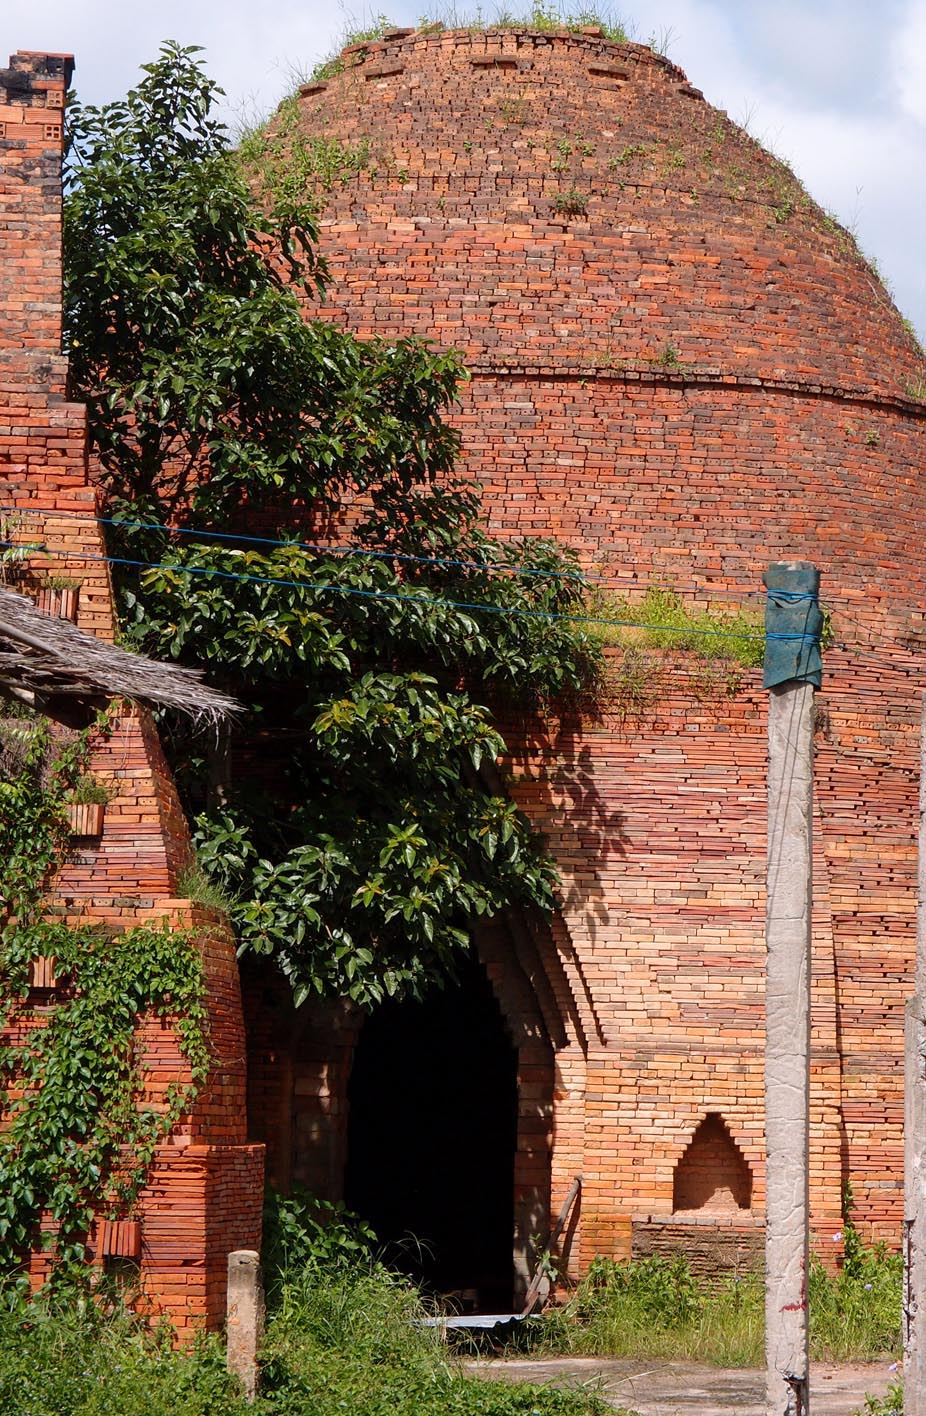 Vietnamese traditional brick kiln.